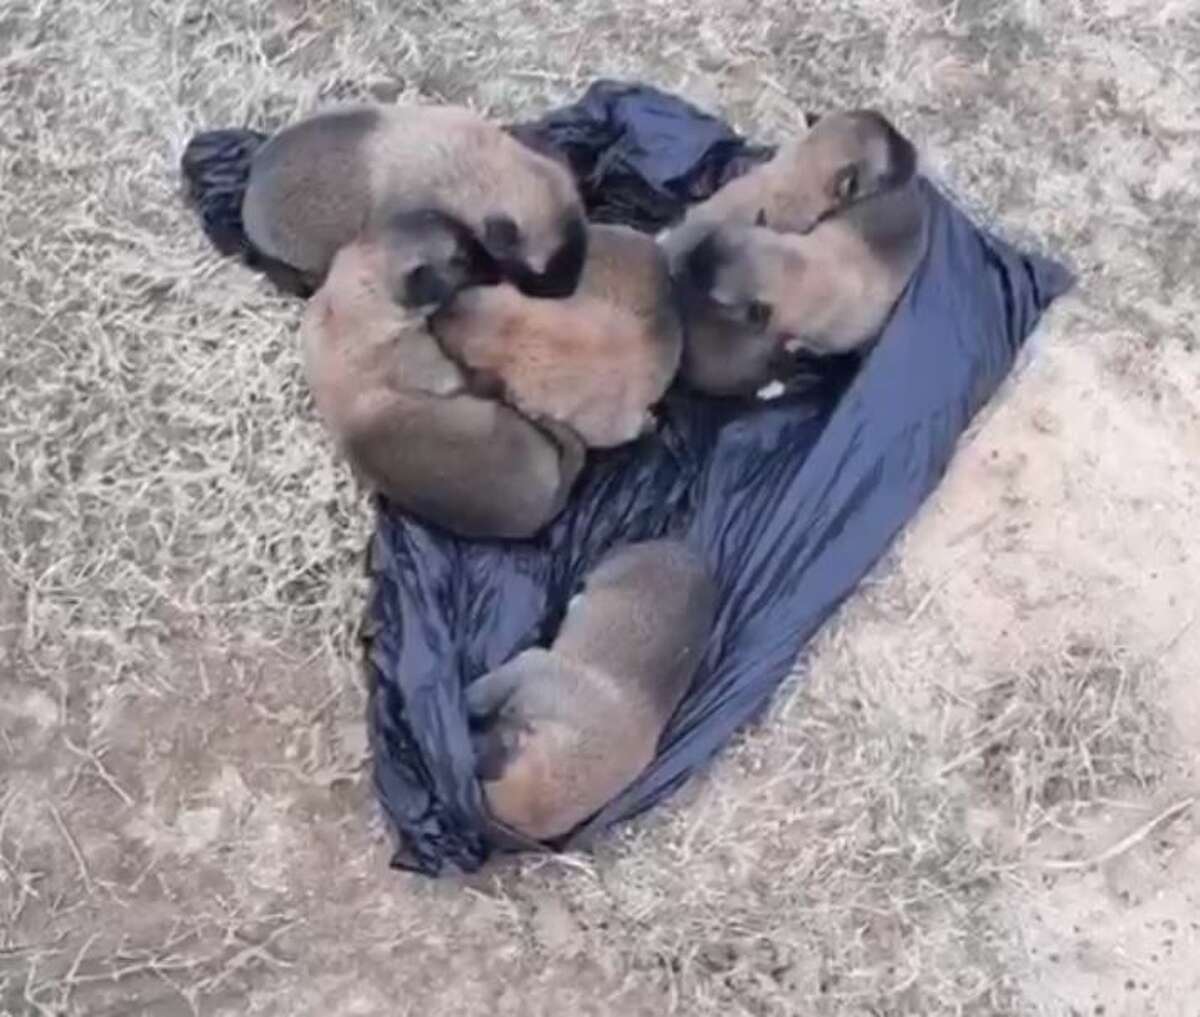 A bag of puppies was tossed out of a car window to the side of a road in Spring Thursday. Officials said they are looking into the incident and that a cruelty report has been filed.